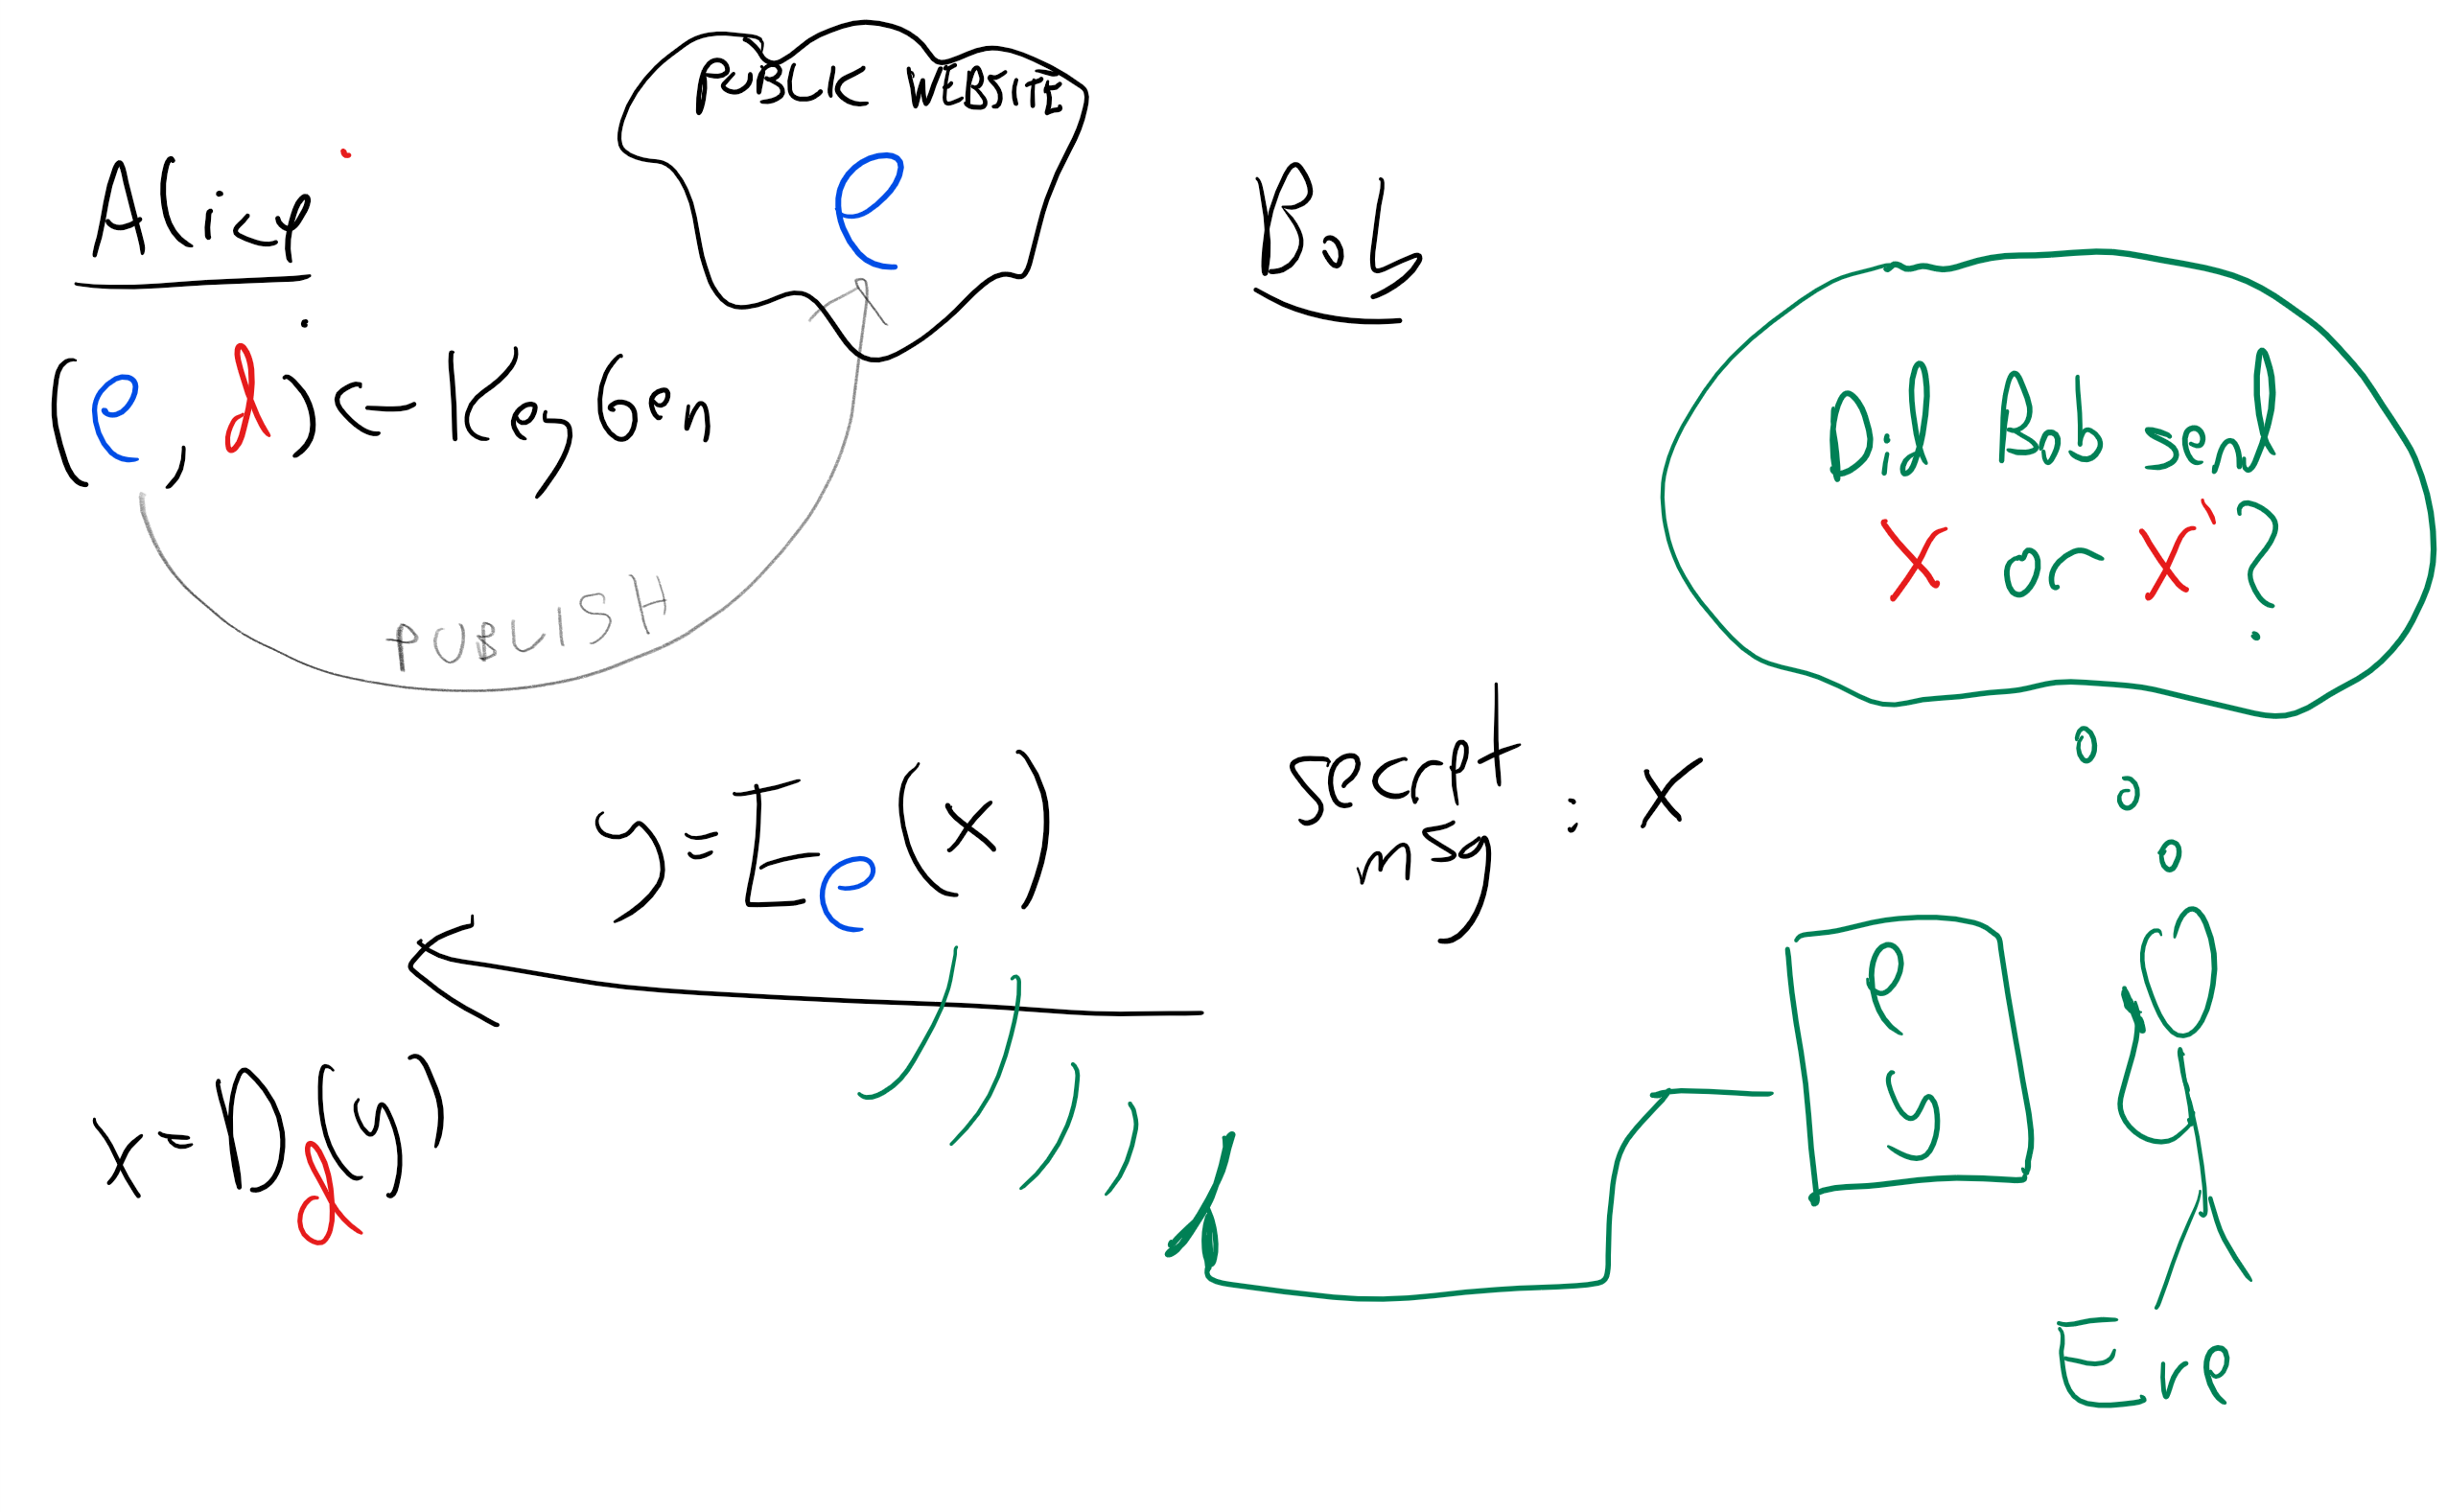 In a public key encryption, Alice generates a private/public keypair (e,d), publishes e and keeps d secret. To encrypt a message for Alice, one only needs to know e. To decrypt it we need to know d.